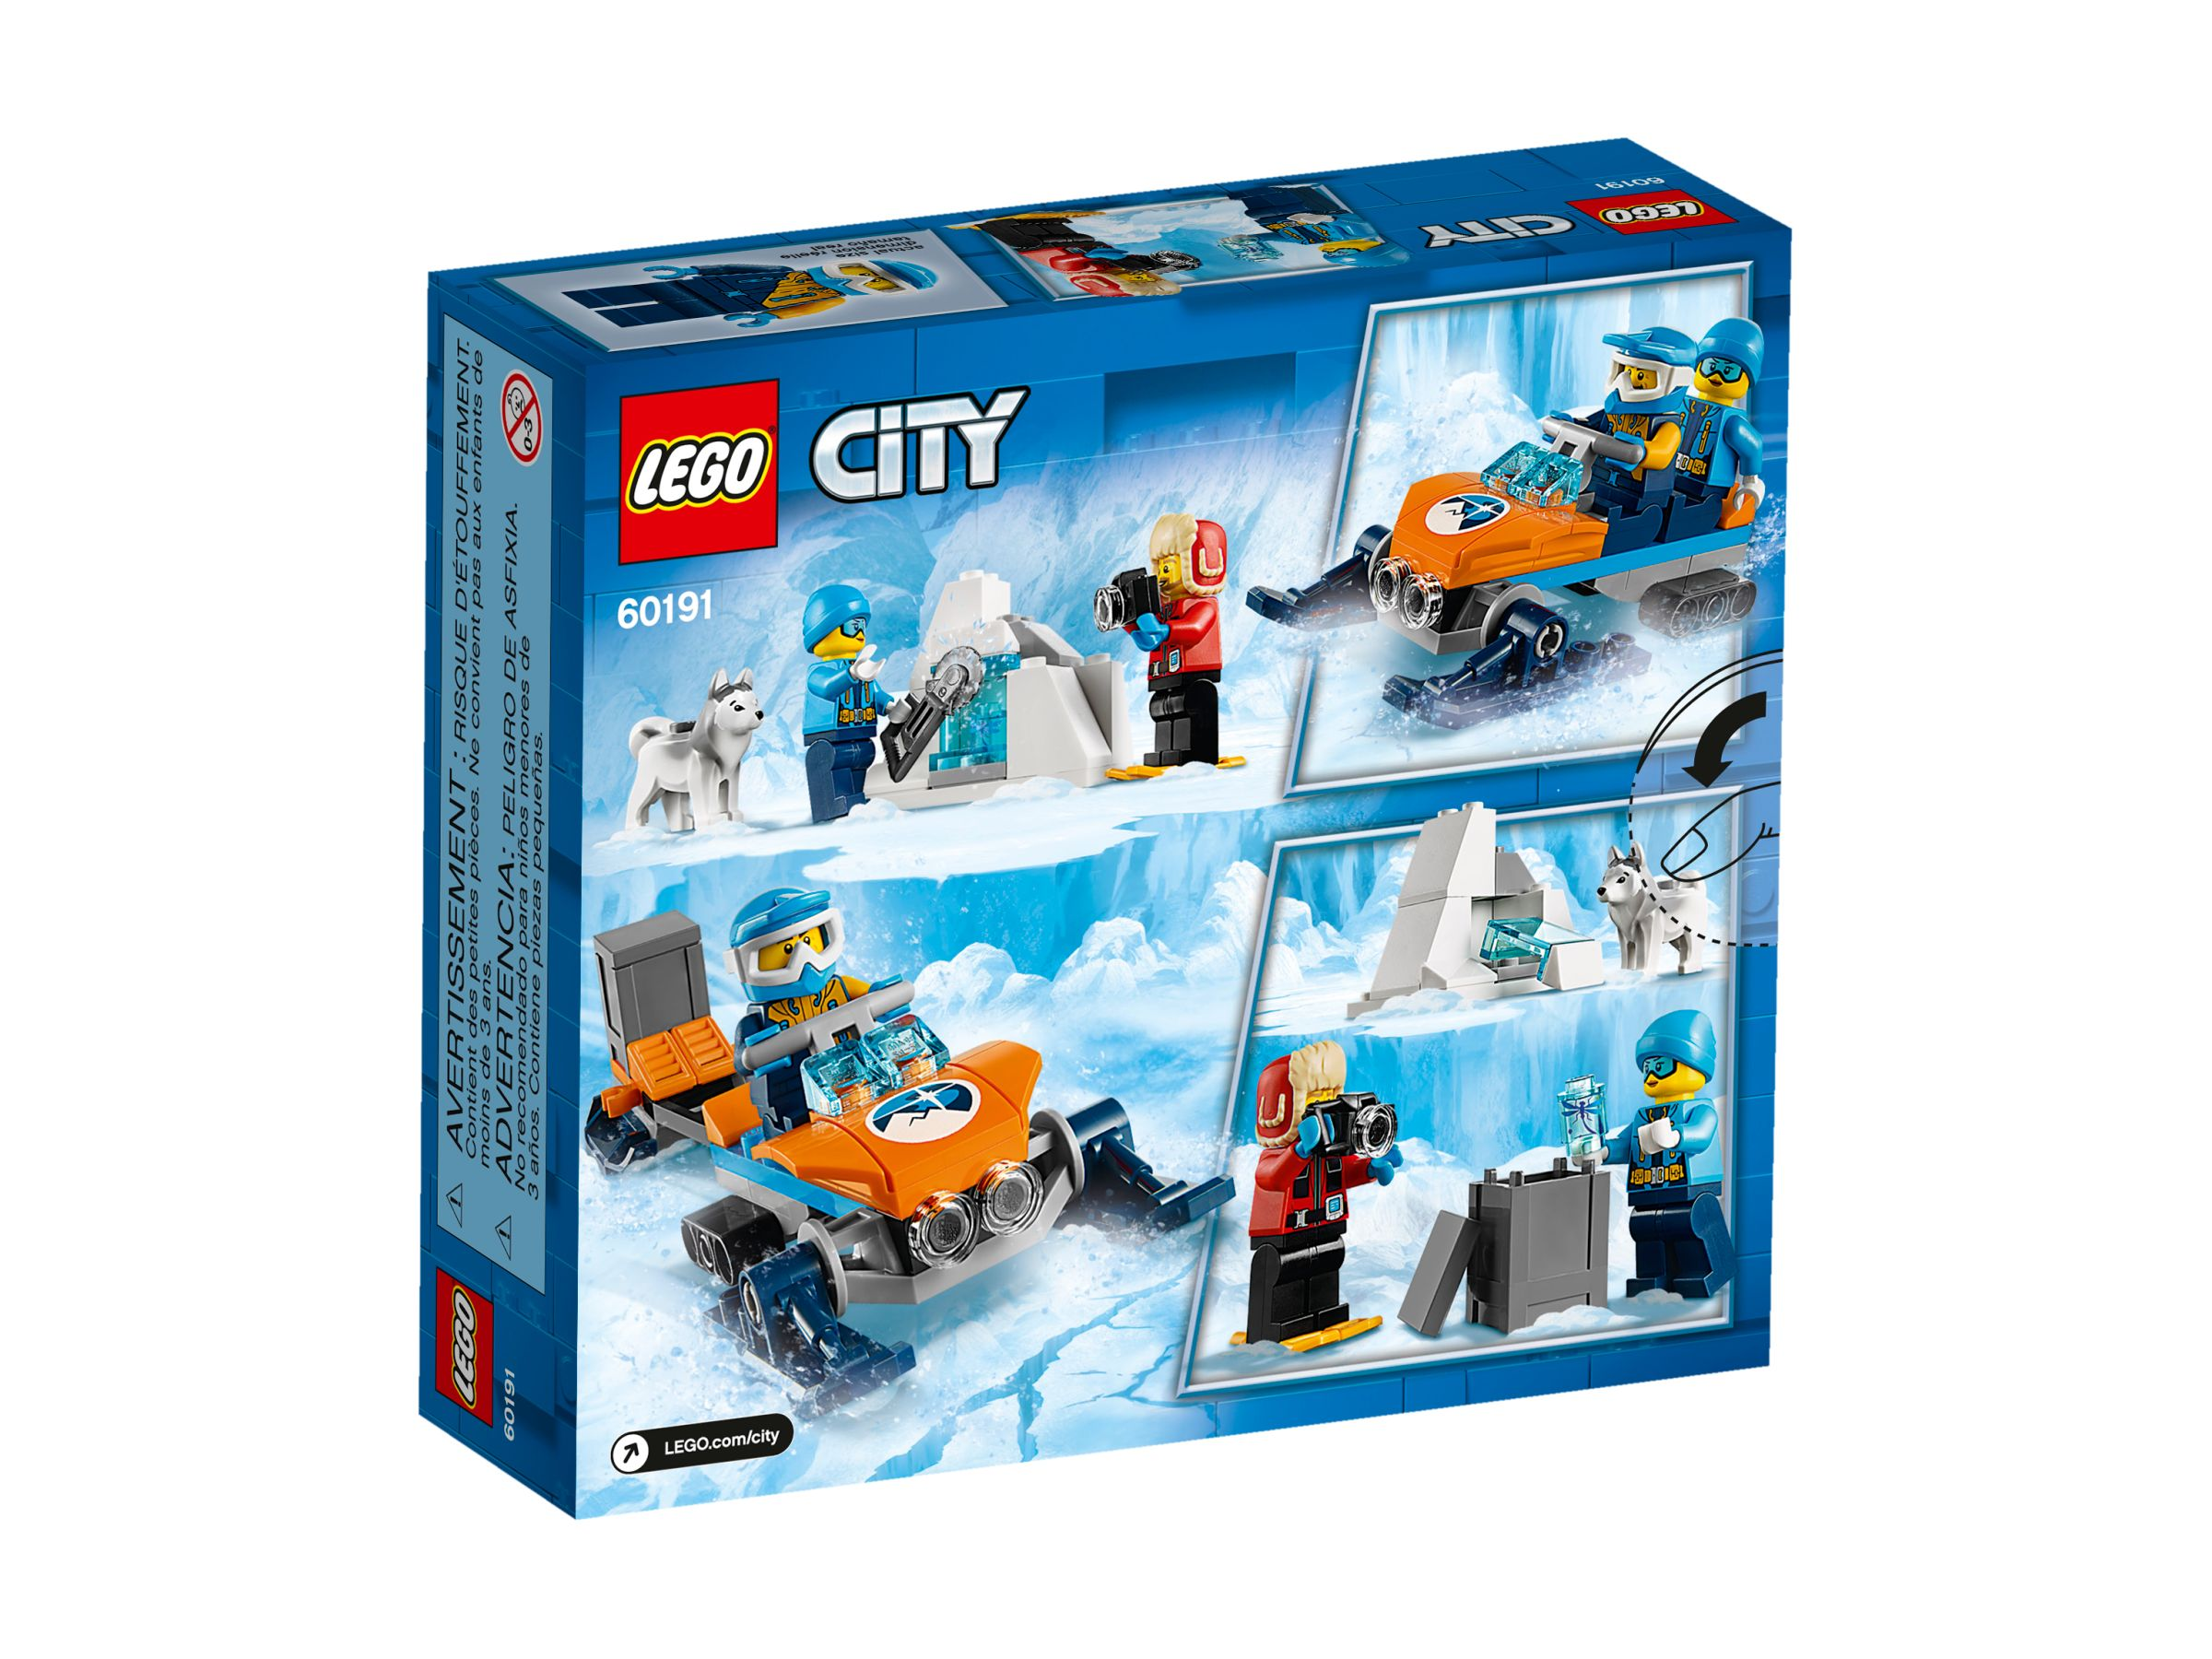 LEGO City 60191 Arktis-Expeditionsteam LEGO_60191_alt4.jpg